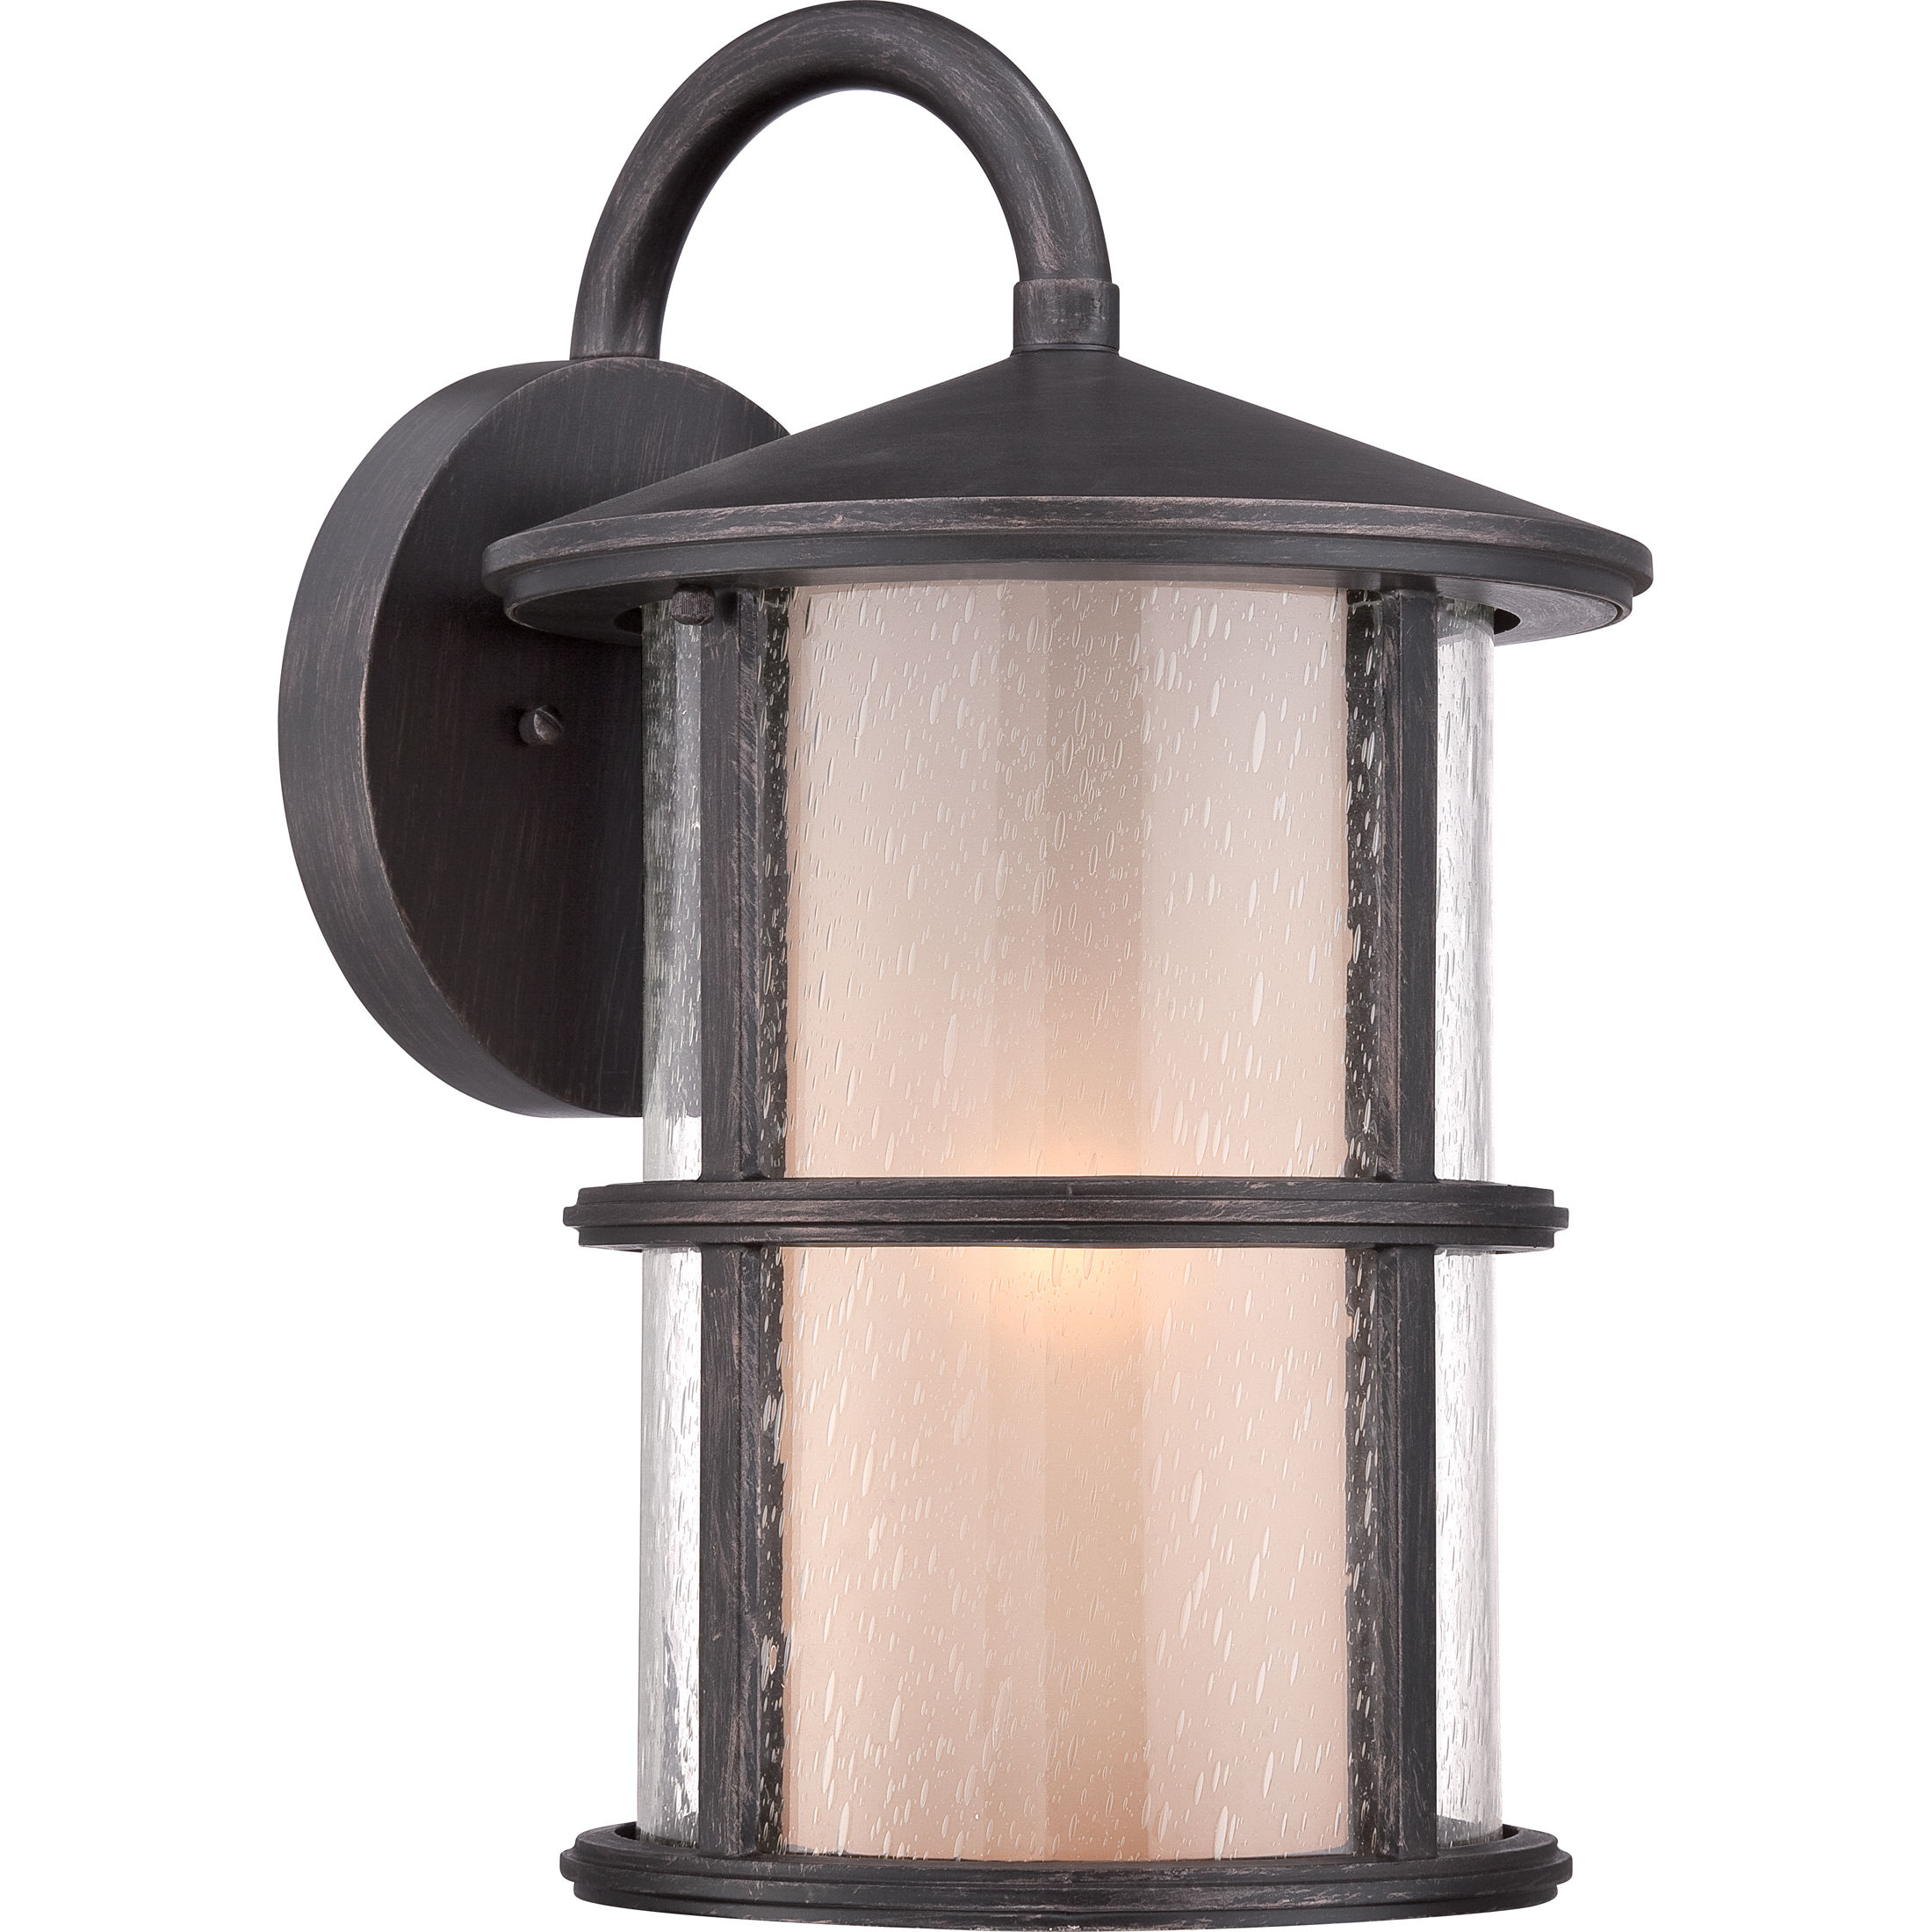 Shop All Miseno Outdoor Lights!